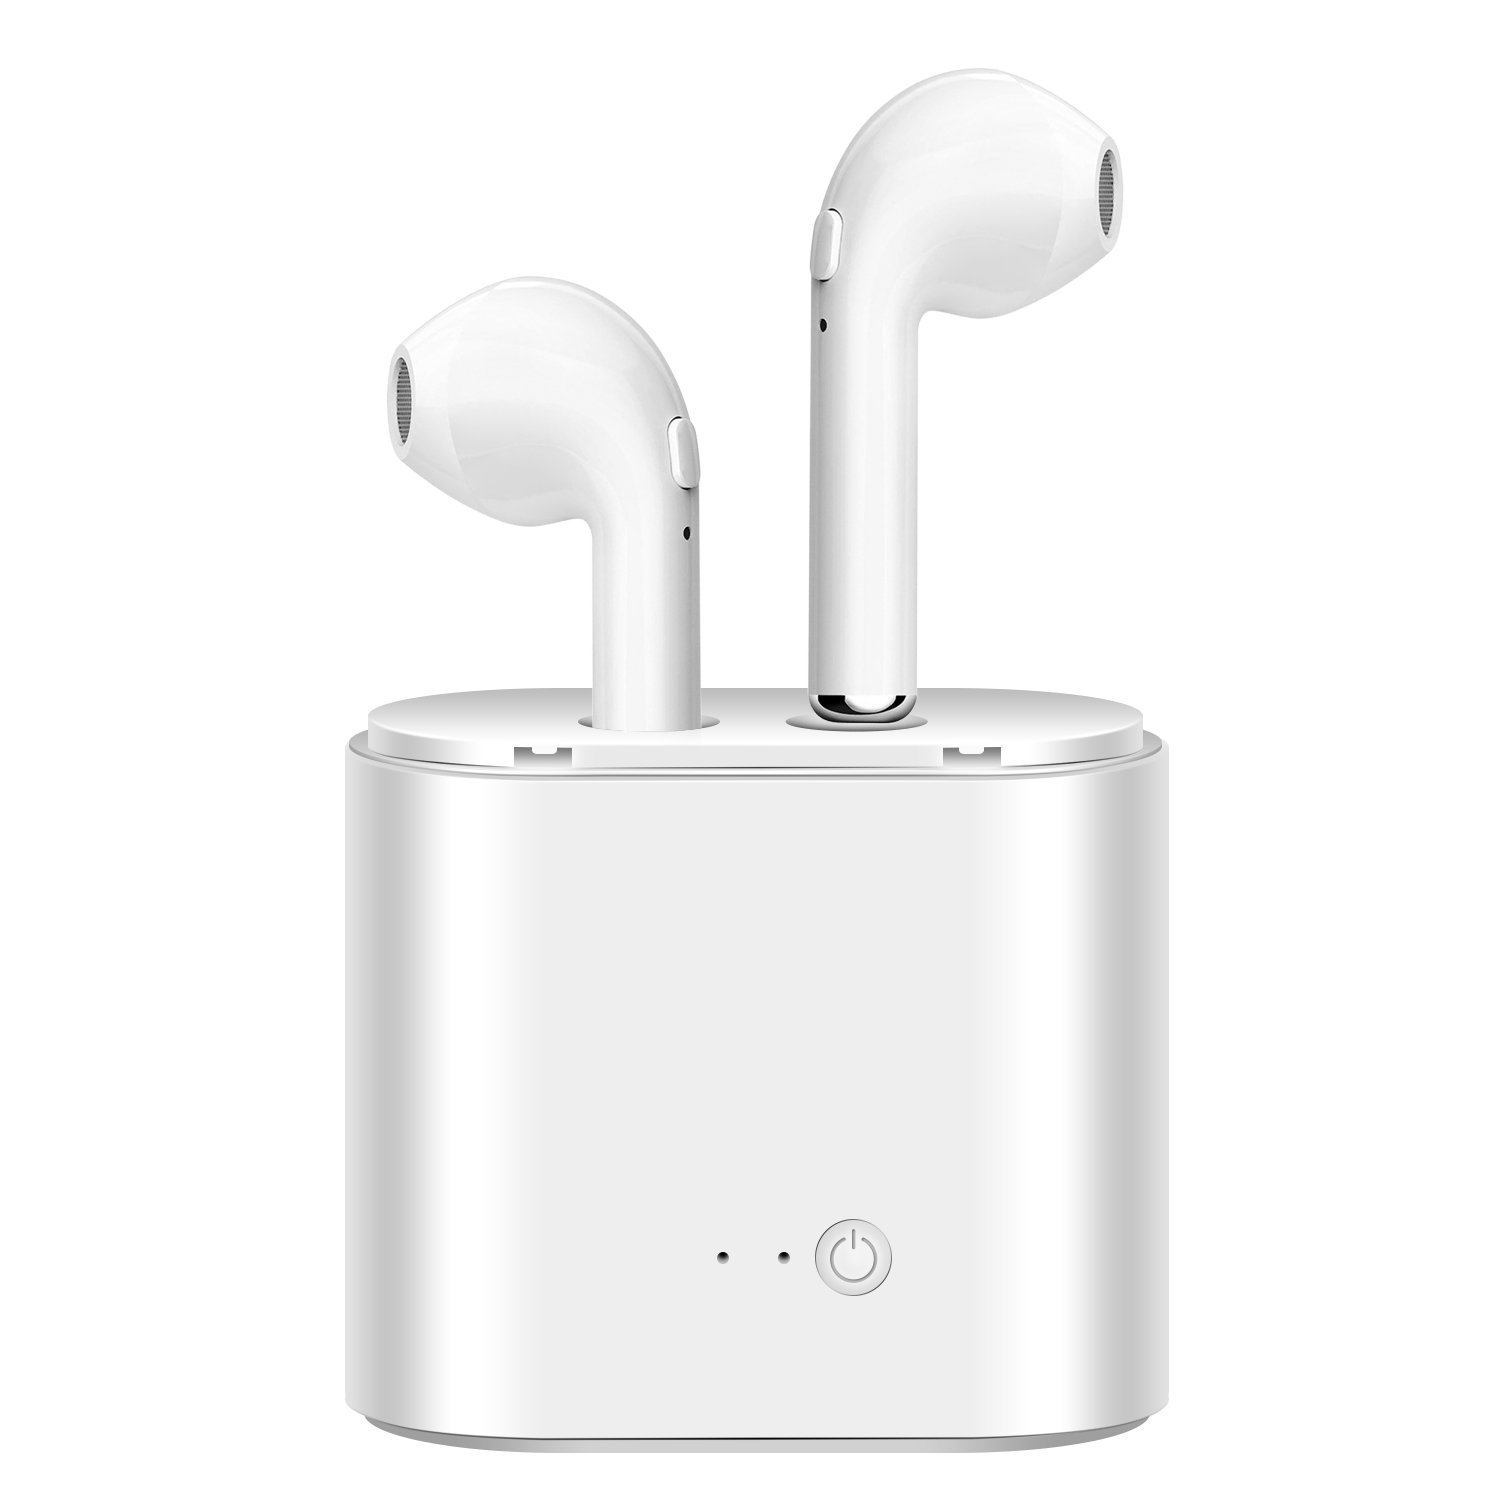 b46c6288032 Wireless Earbuds,Bekhic HI1 Bluetooth Headphones Stereo Earphone Cordless  Sport Headsets for Apple AirPods iphone X/8/ 8 plus /7/ 7 plus/ 6/ 6s plus  Android ...